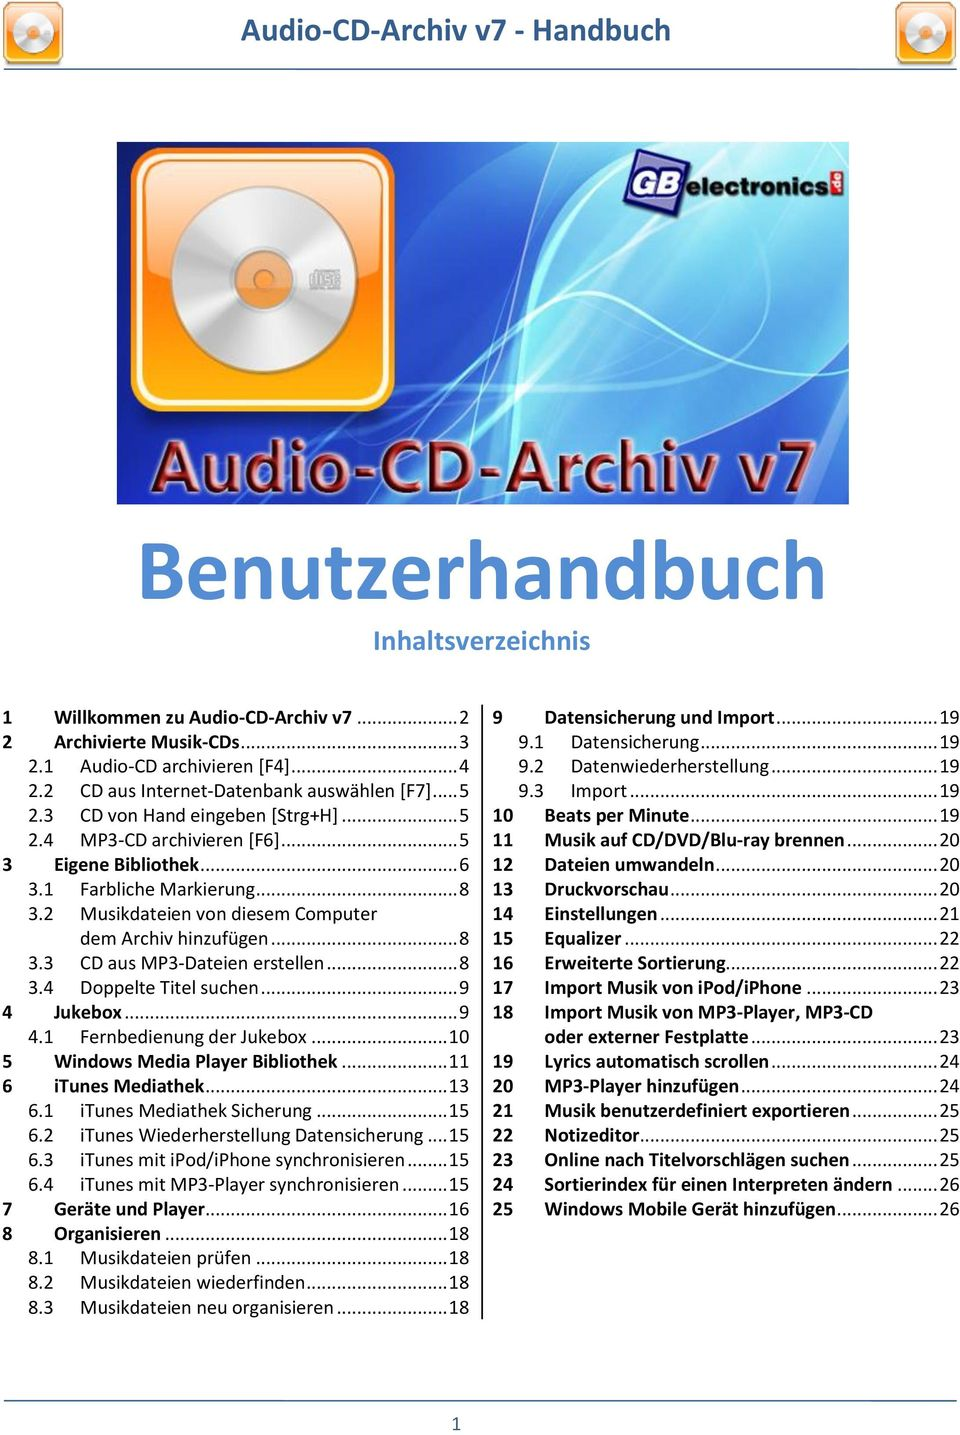 .. 8 3.4 Doppelte Titel suchen... 9 4 Jukebox... 9 4.1 Fernbedienung der Jukebox... 10 5 Windows Media Player Bibliothek... 11 6 itunes Mediathek... 13 6.1 itunes Mediathek Sicherung... 15 6.